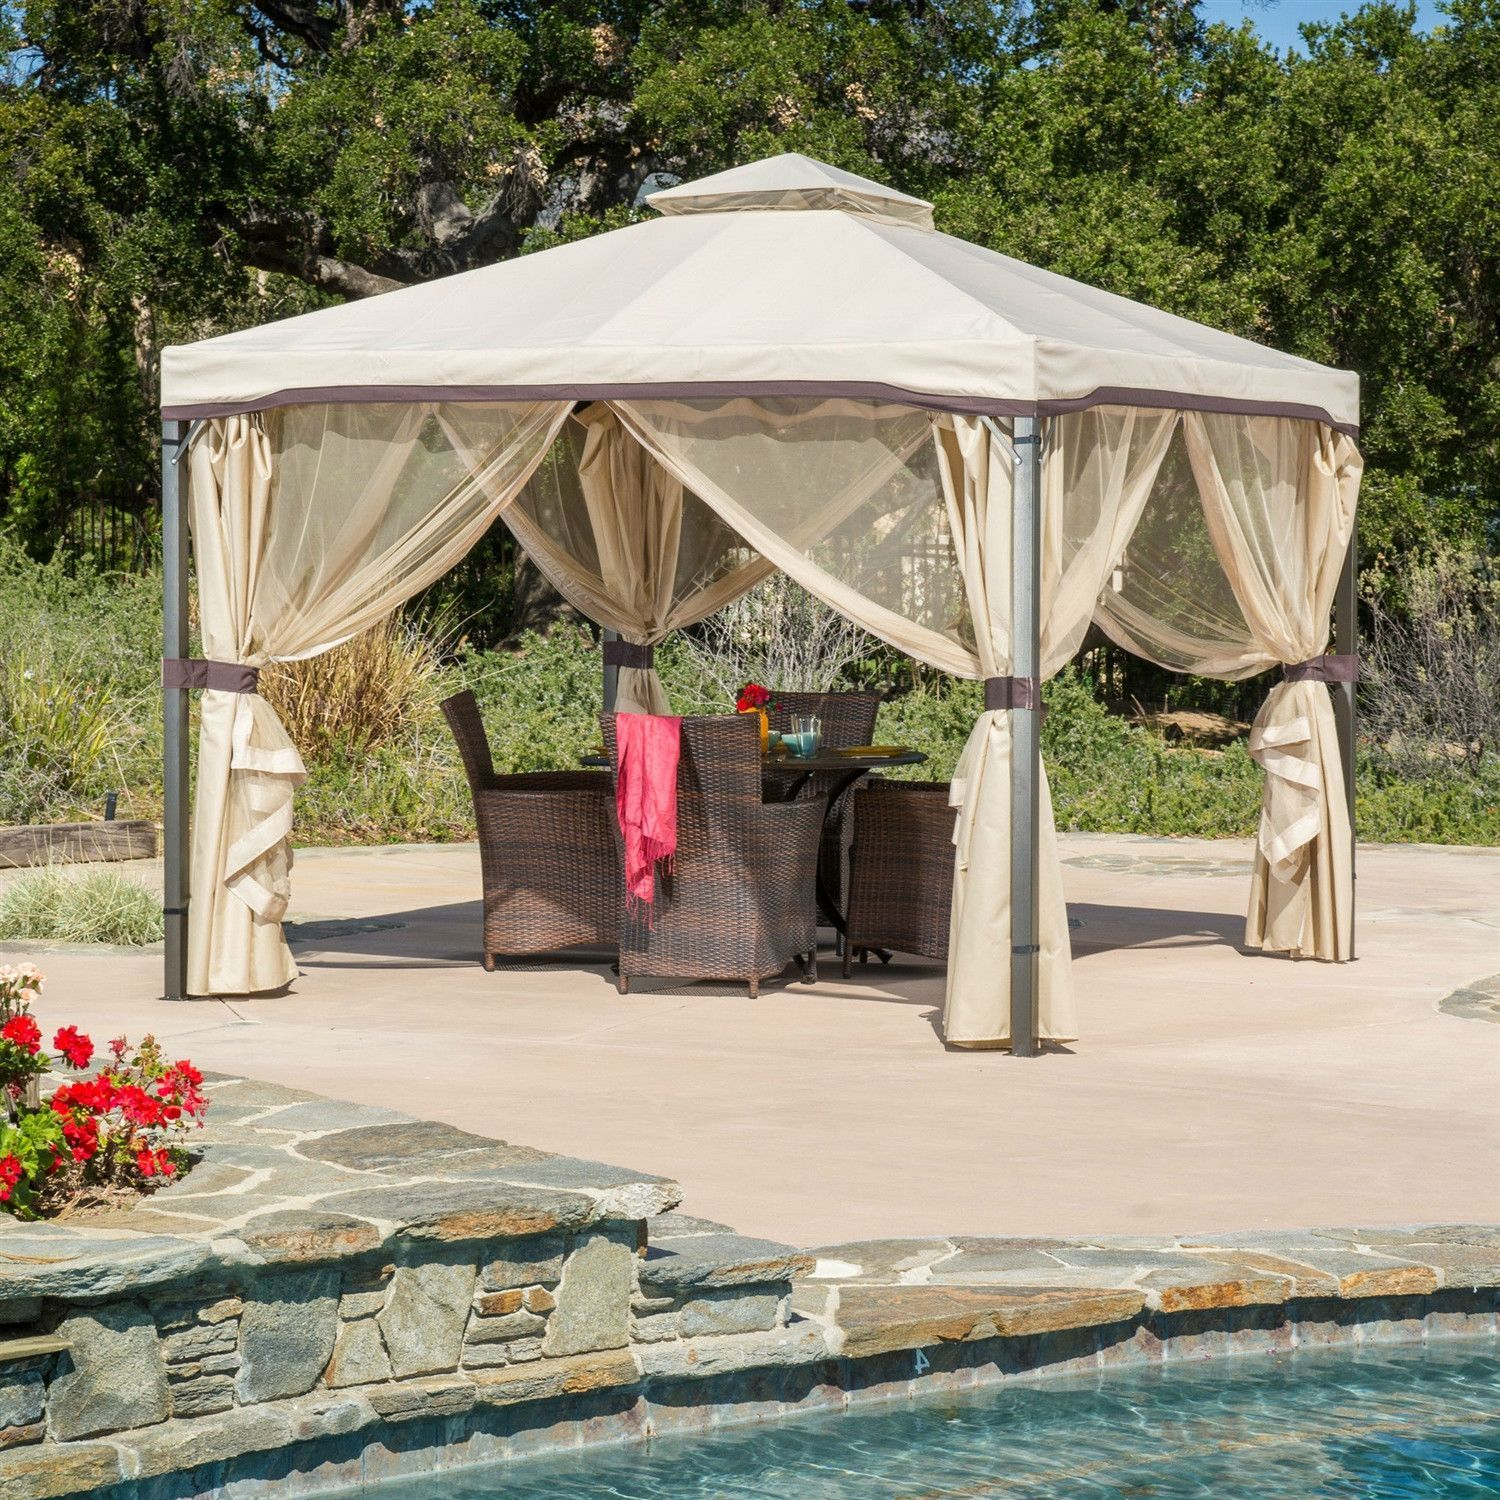 30 Round Gazebos That Are Shady and Stylish